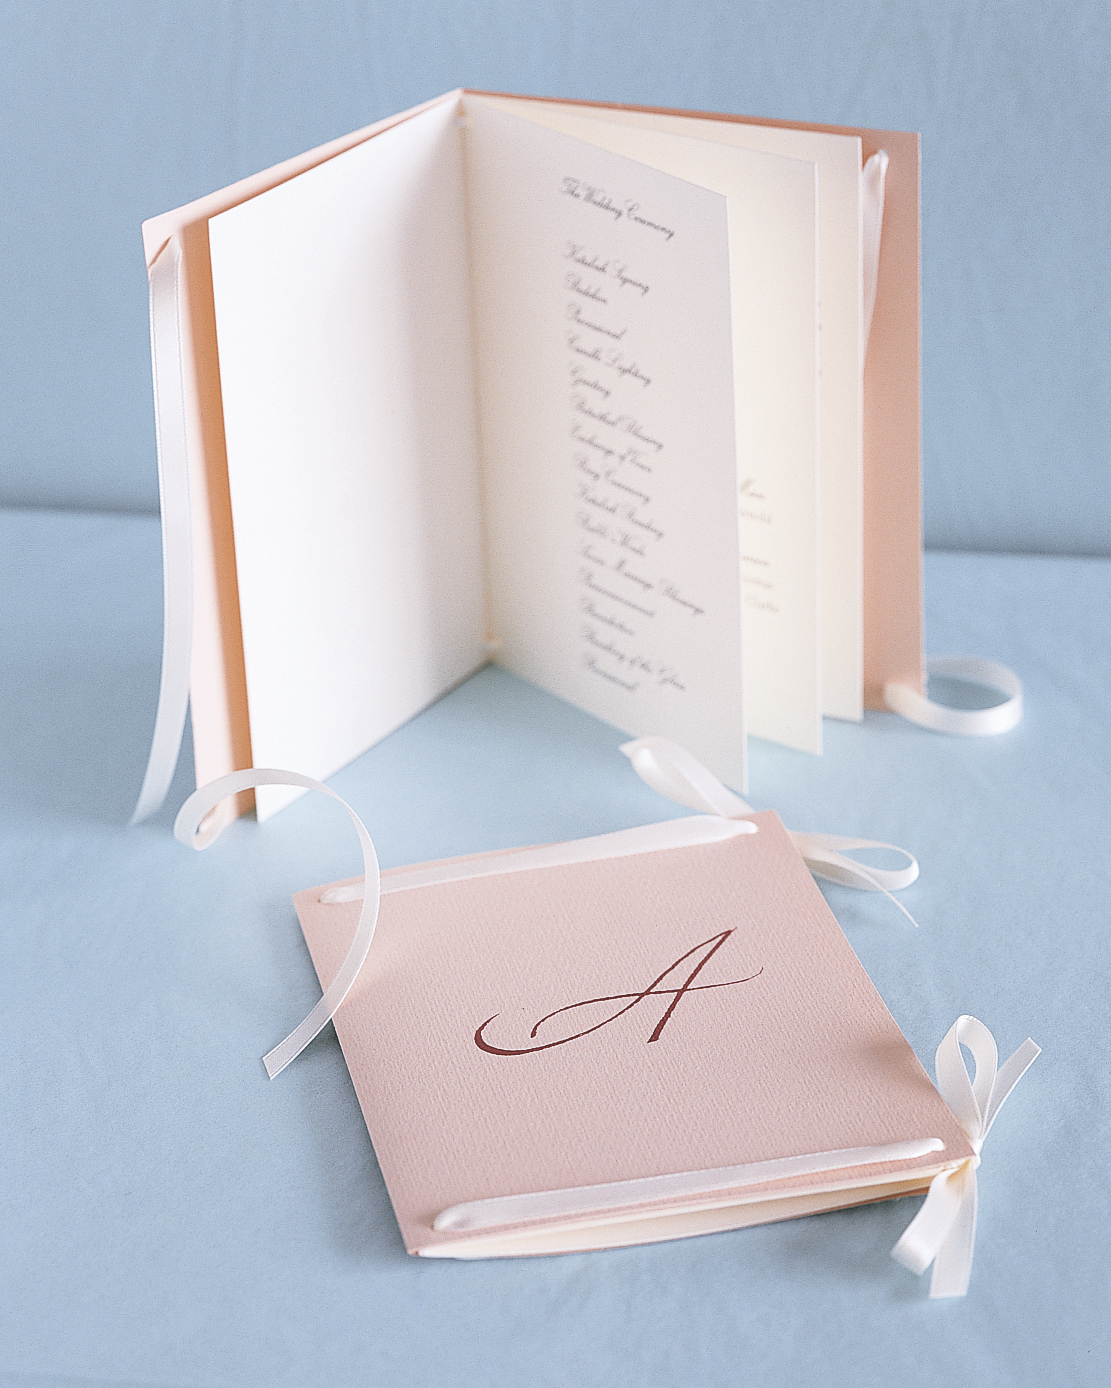 diy-wedding-ceremony-programs-ml083a02-0515.jpg